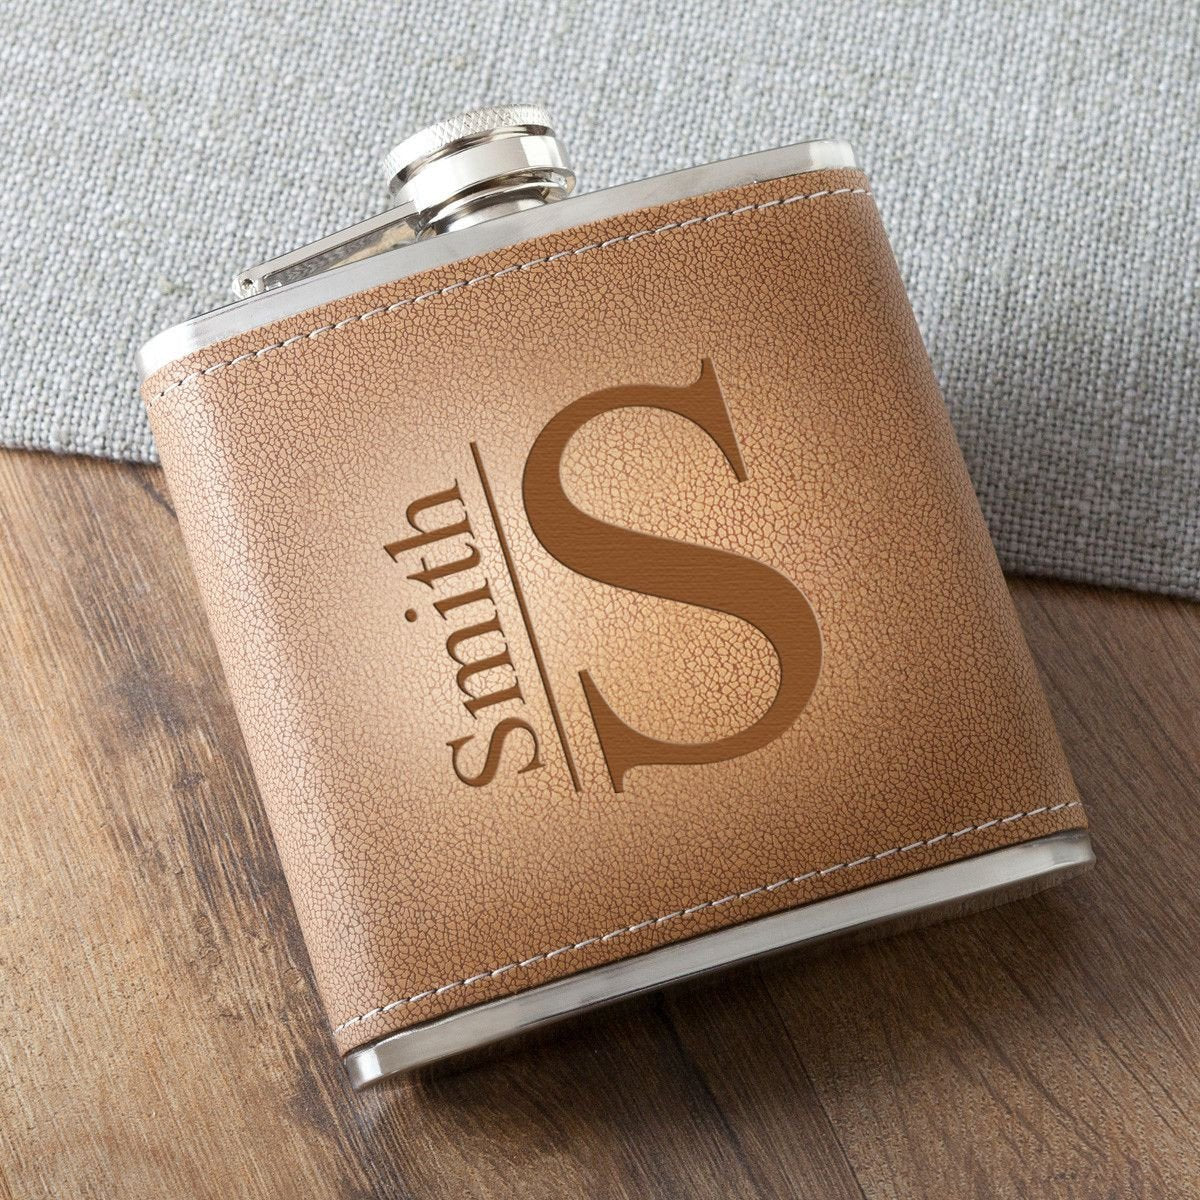 Personalized-Durango-Monogrammed-6-oz-Leather-Hide-Flask